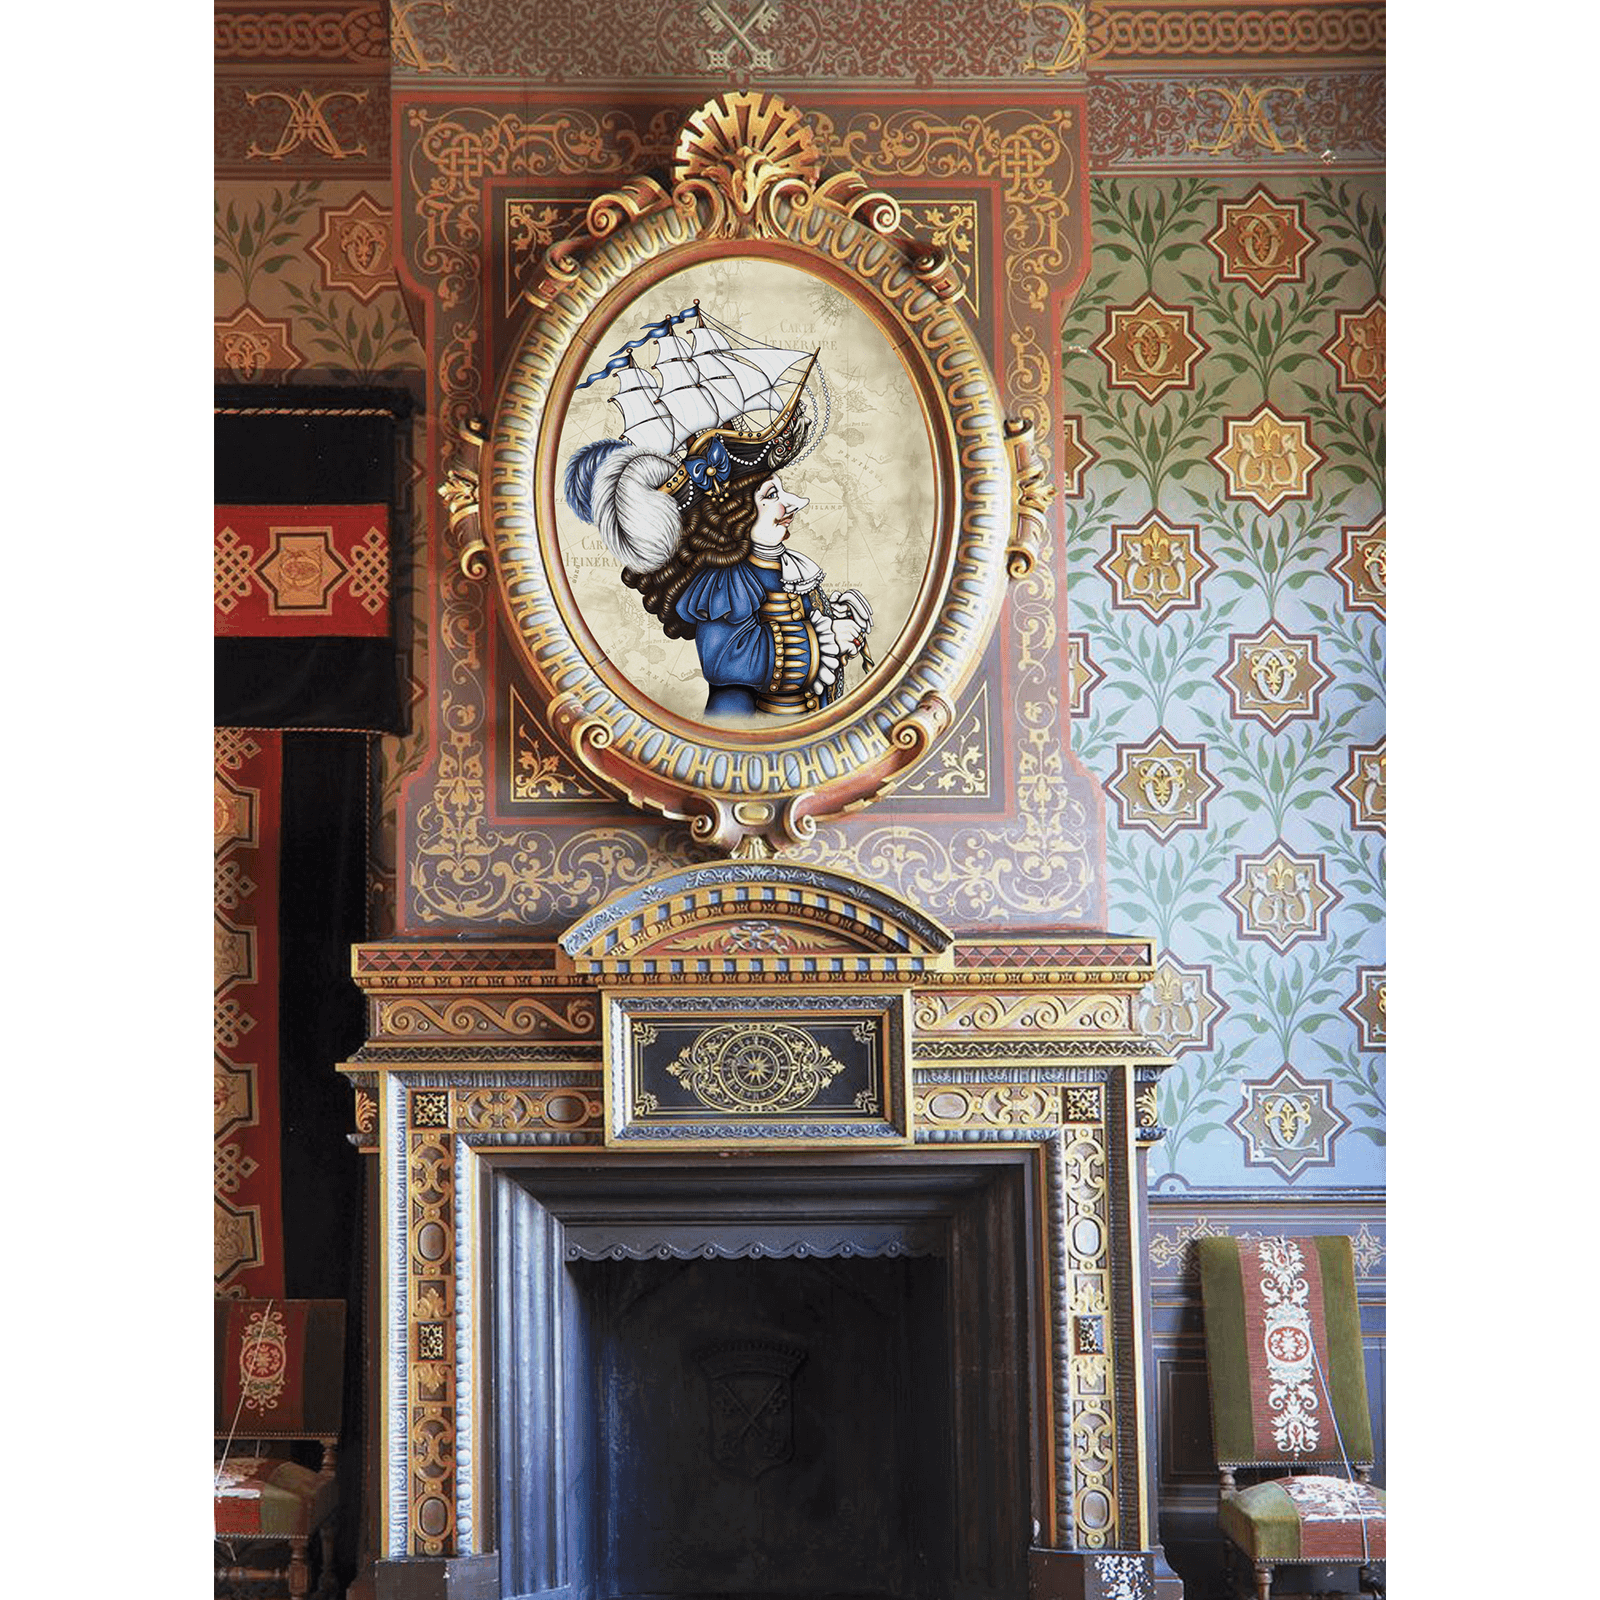 G_portrait over fireplace.png